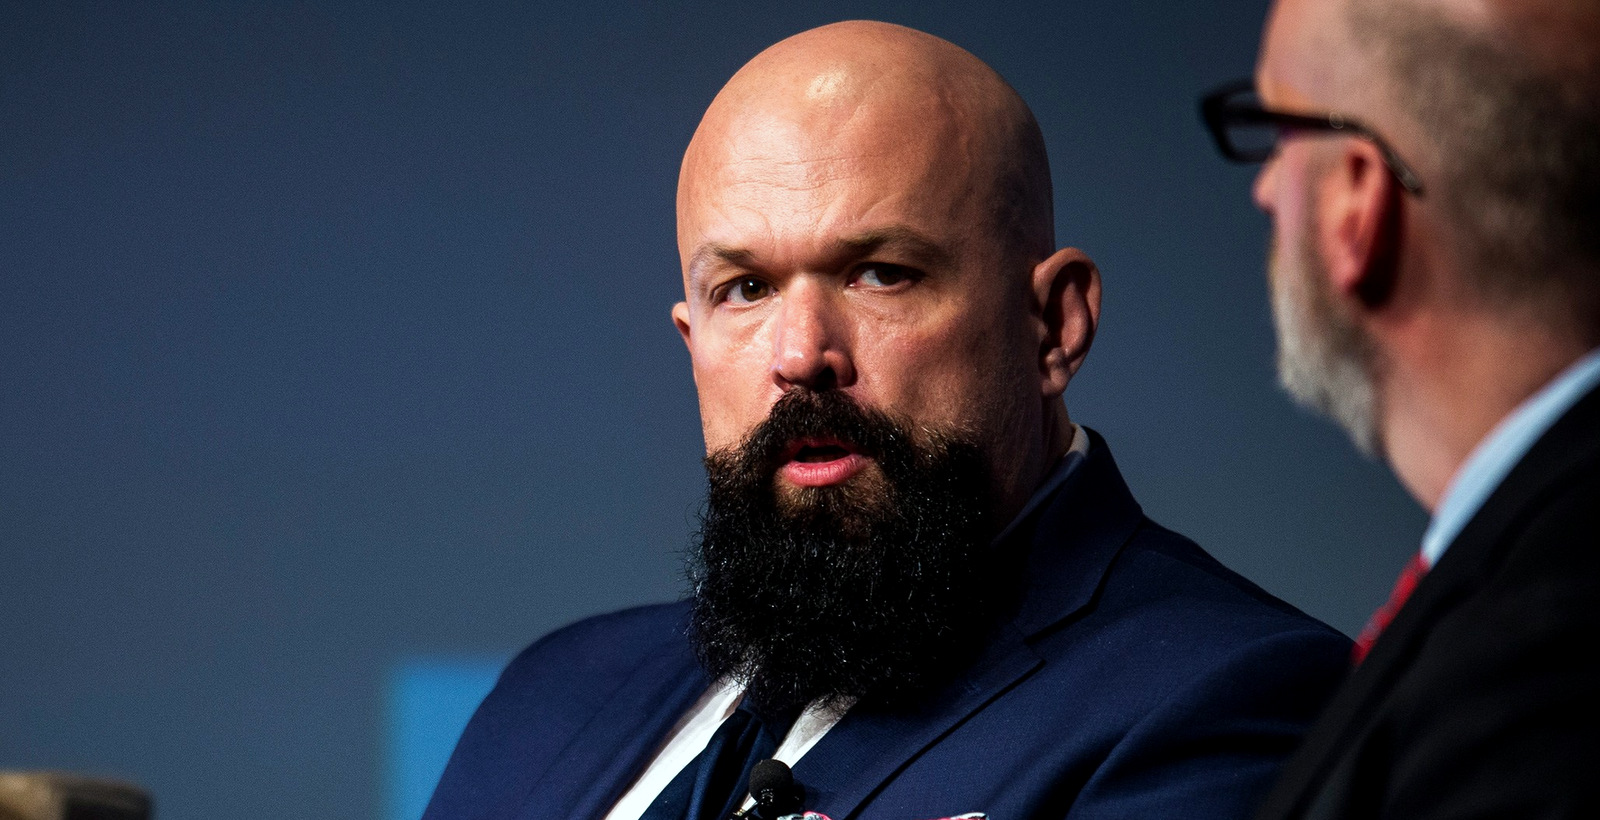 Kevin Williamson's Ousting From The Atlantic Reveals a Major Hypocrisy in Conservative Media